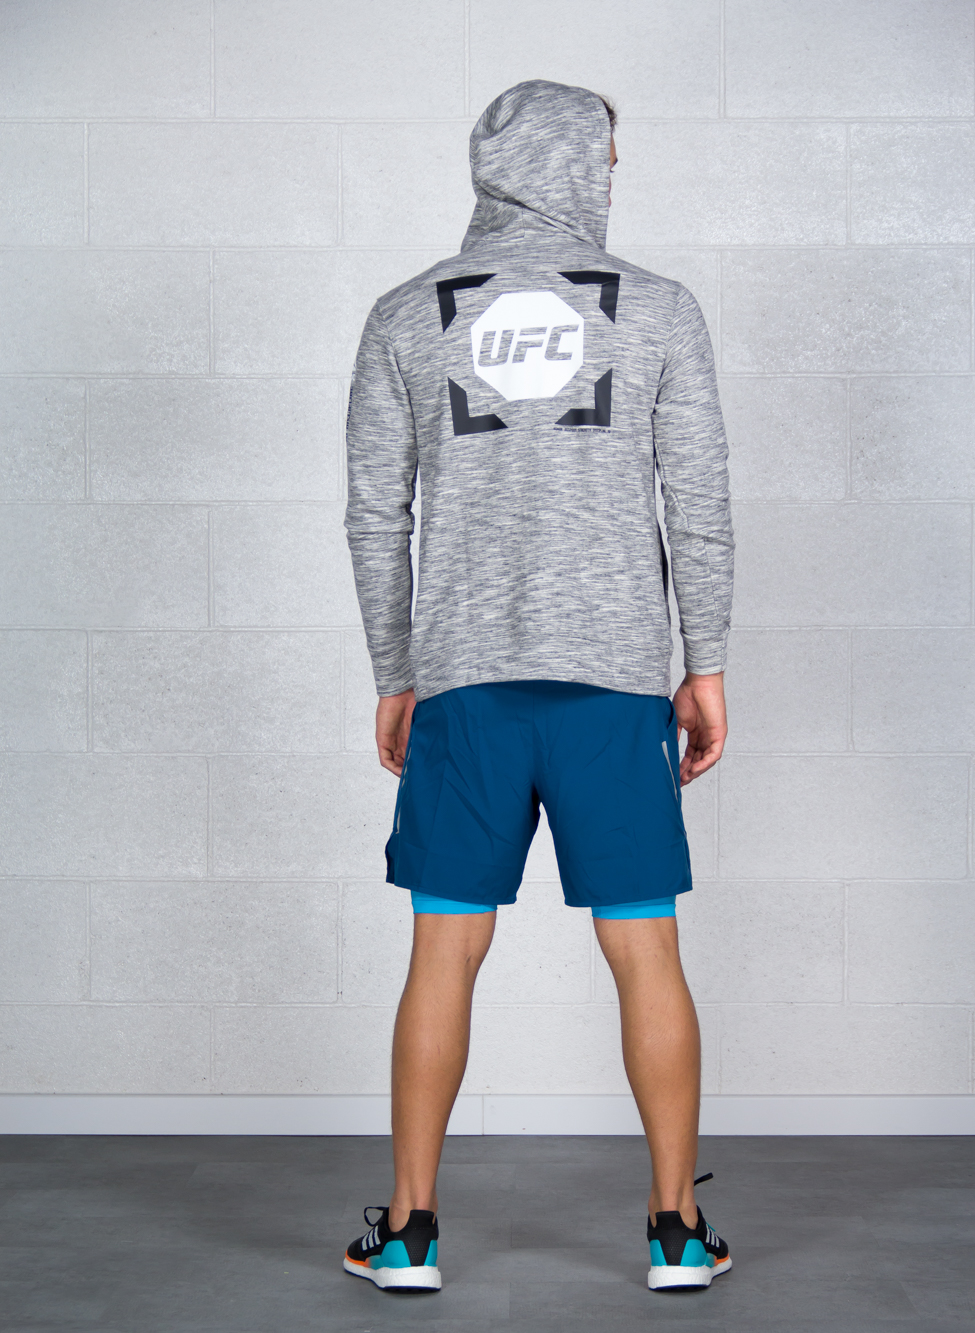 Color contrasts